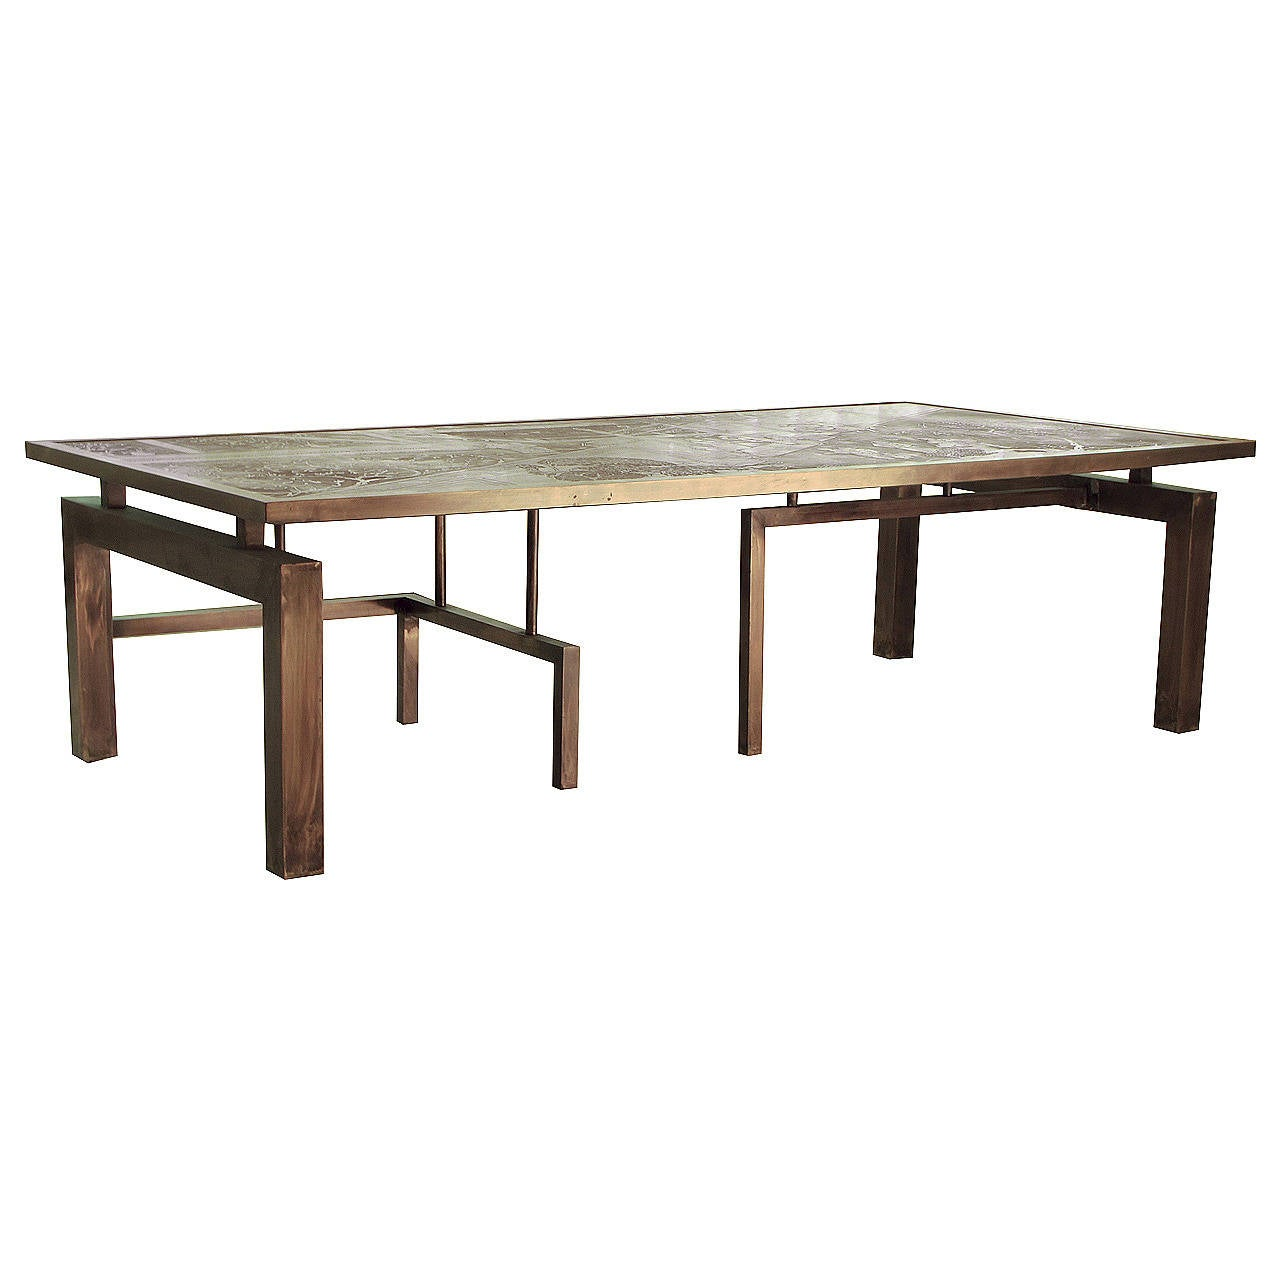 Rare architectural medici coffee table by philip and for Architectural coffee table